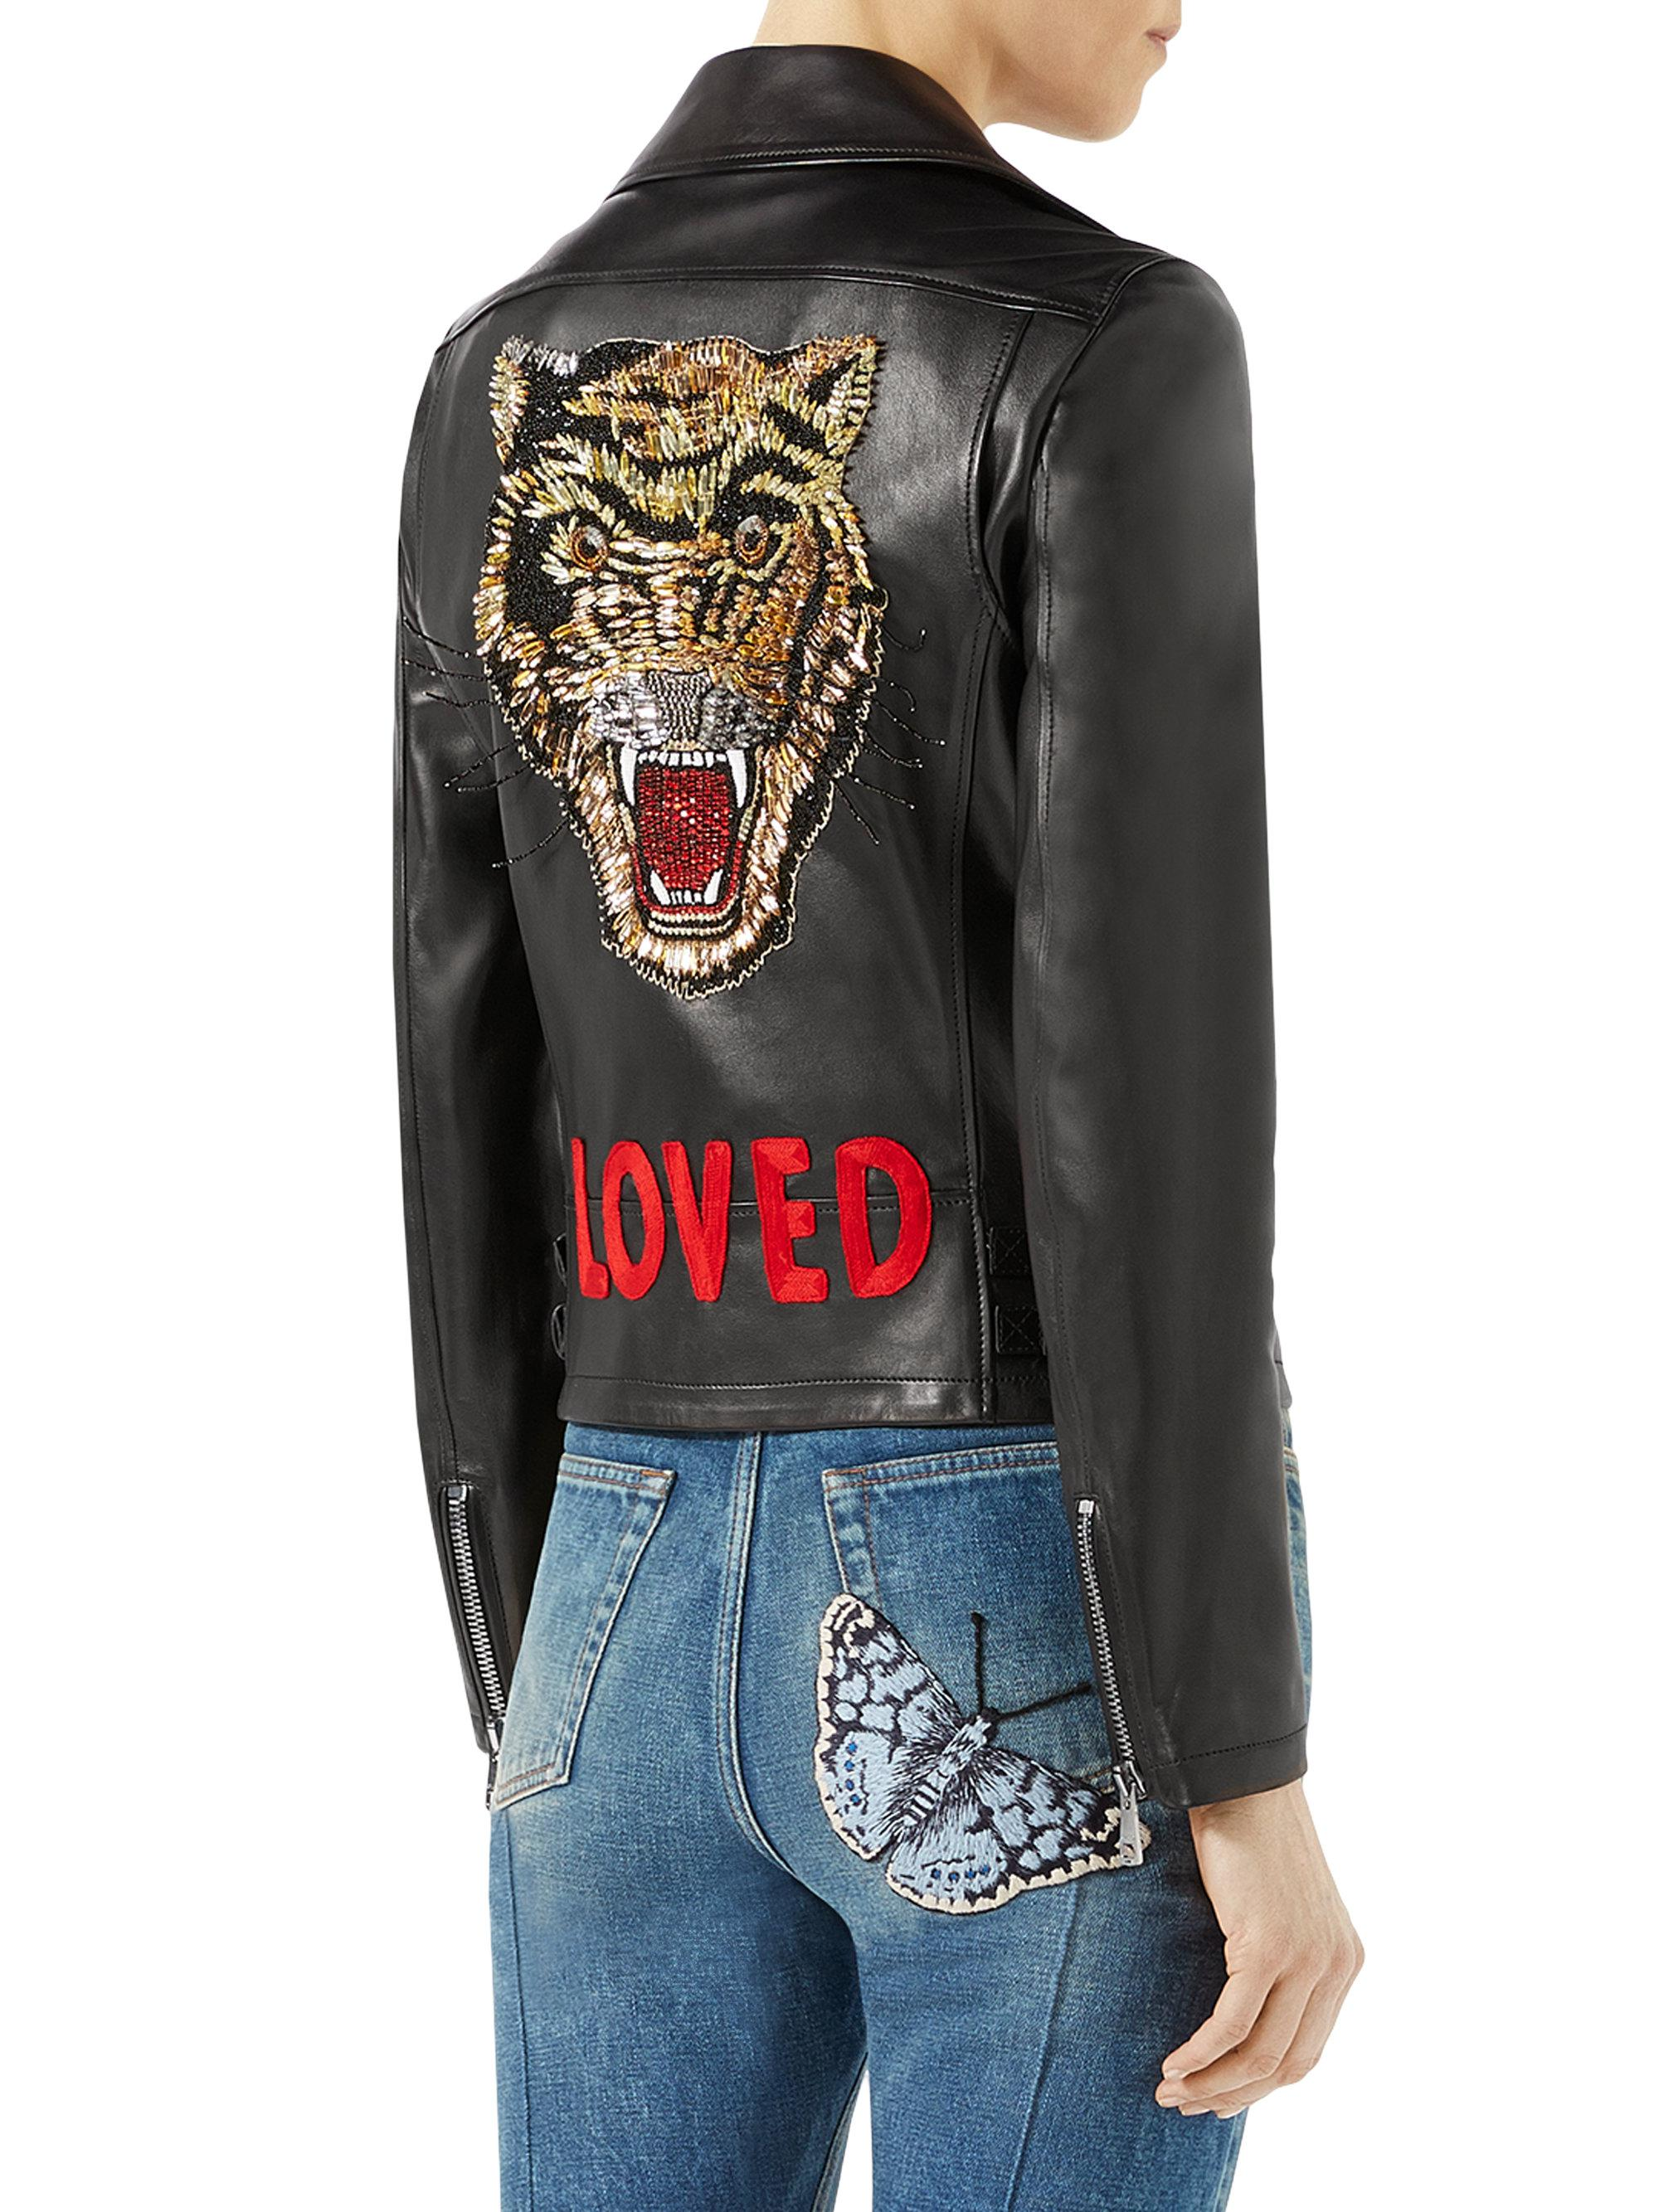 Gucci Women s Loved Tiger-embroidered Leather Jacket - Black - Size 46 (10)  in Black - Lyst 2d5ad640cf30